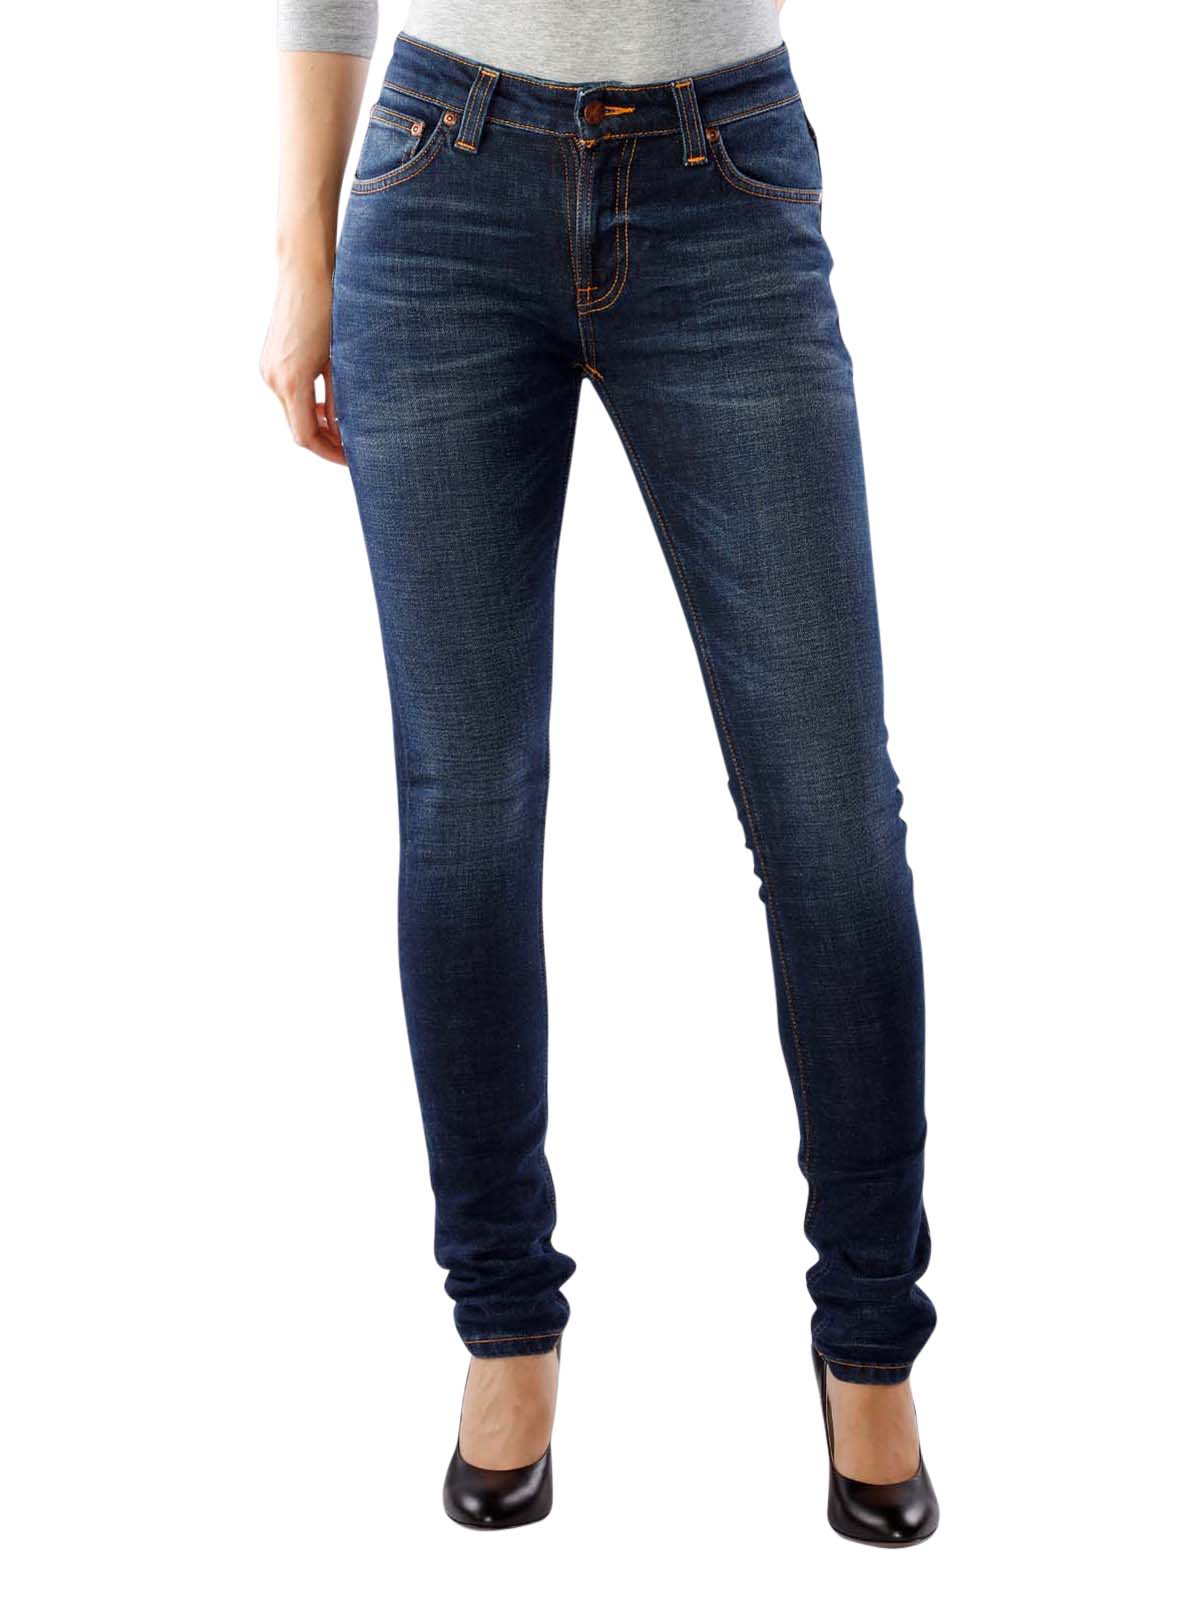 0cd1f22deffe5c Fast Delivery | Nudie Jeans Skinny Lin dark blue ... - McJeans.ch